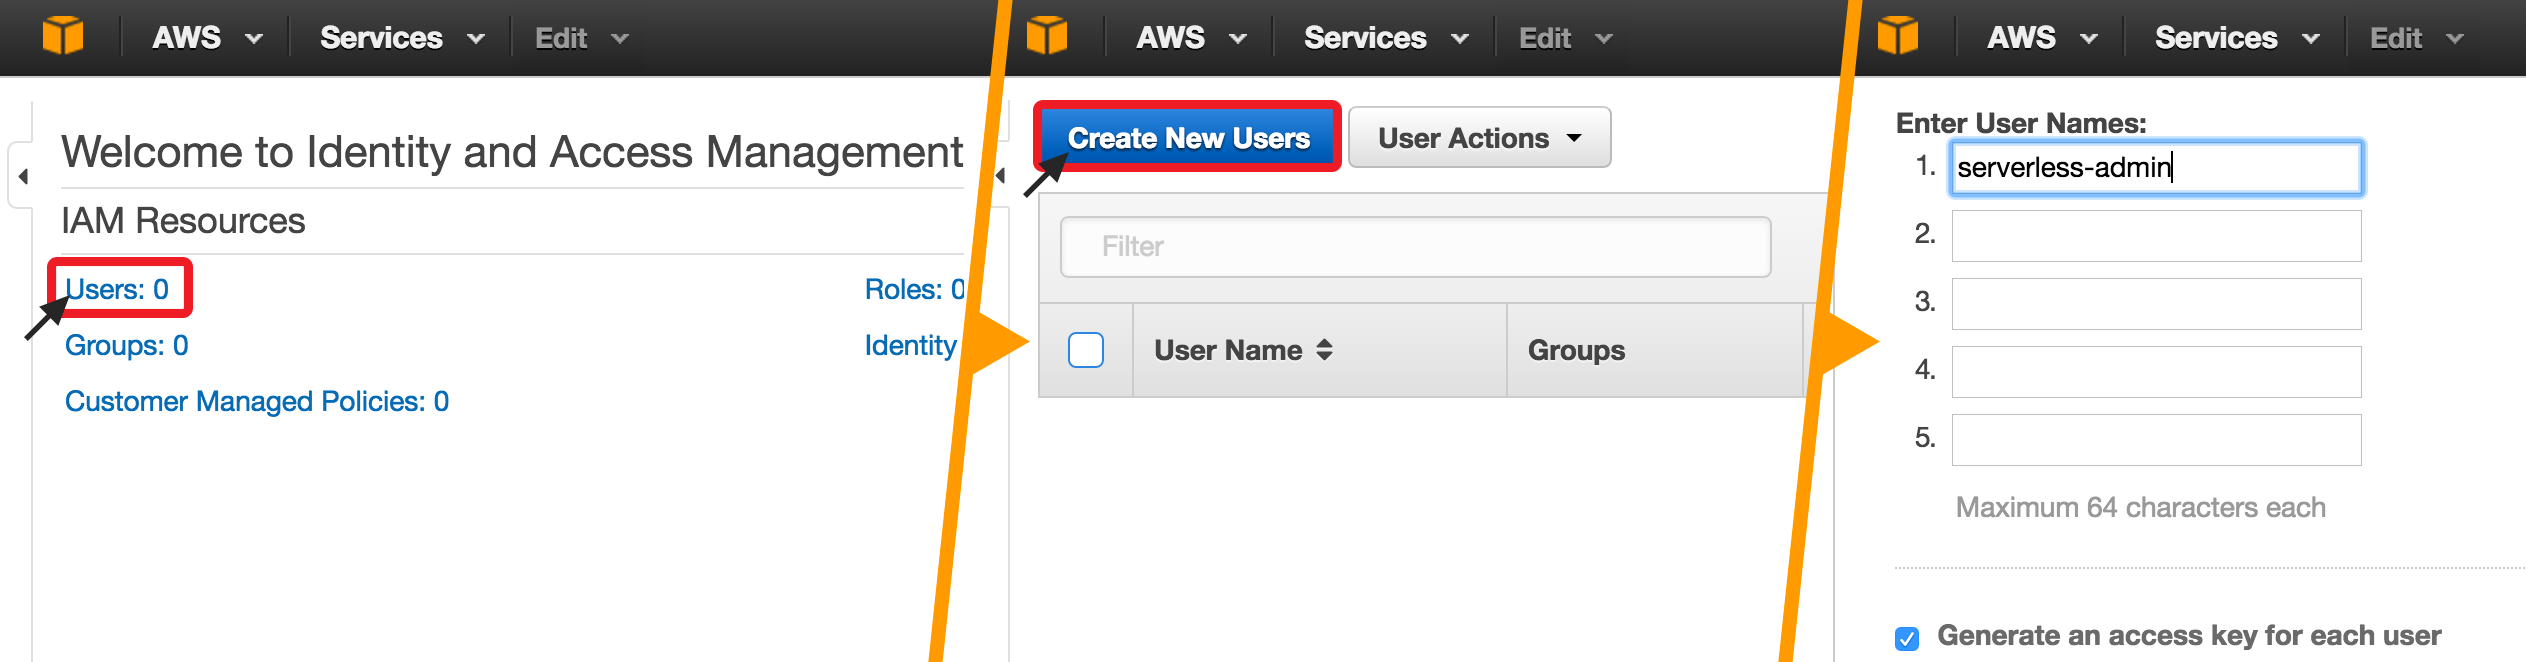 Aws User Creation